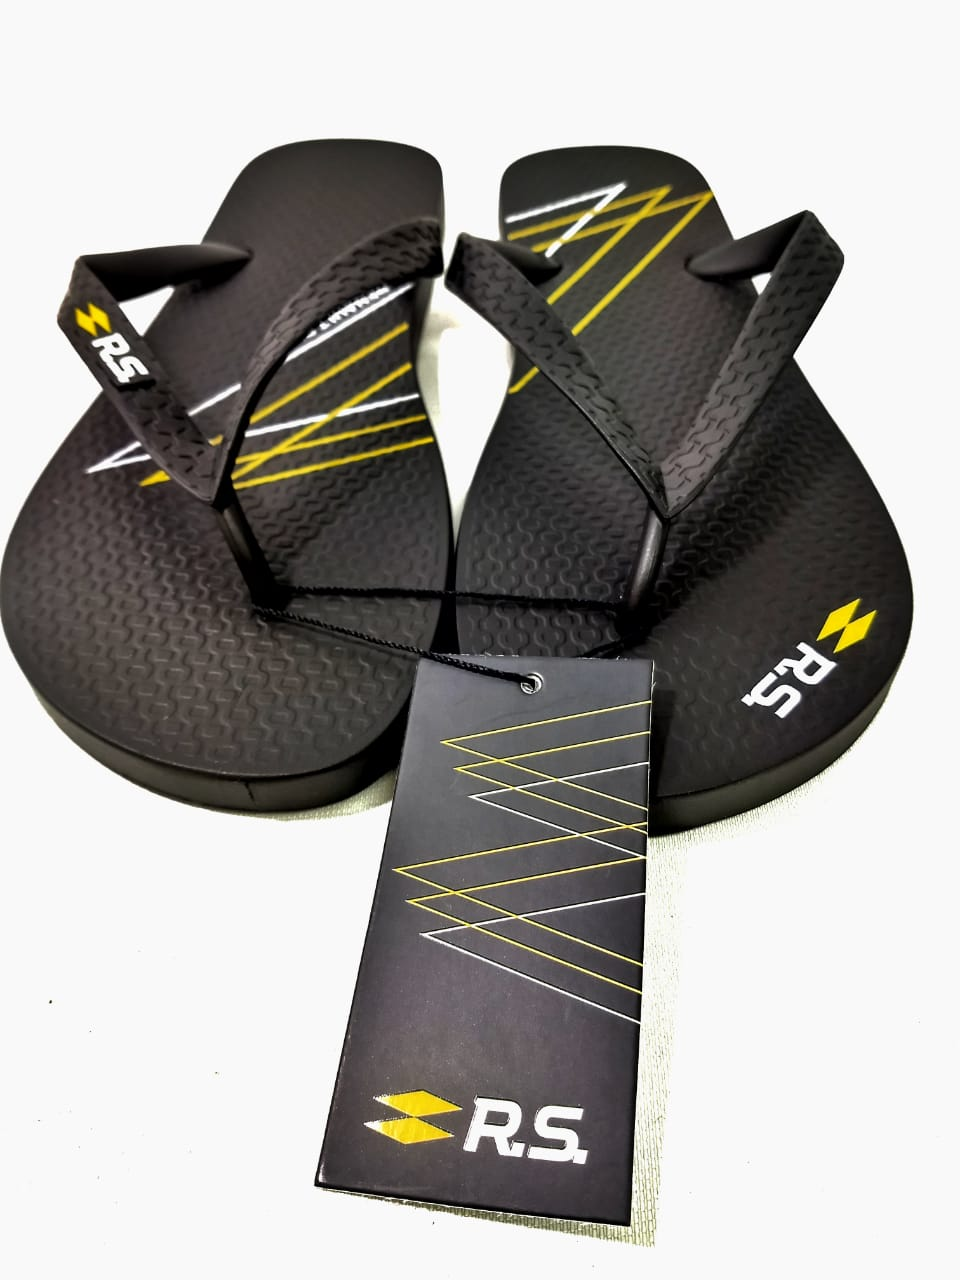 Chinelo New Graphic Renault Rs 43-44 - Chinelo - Preto - Uni